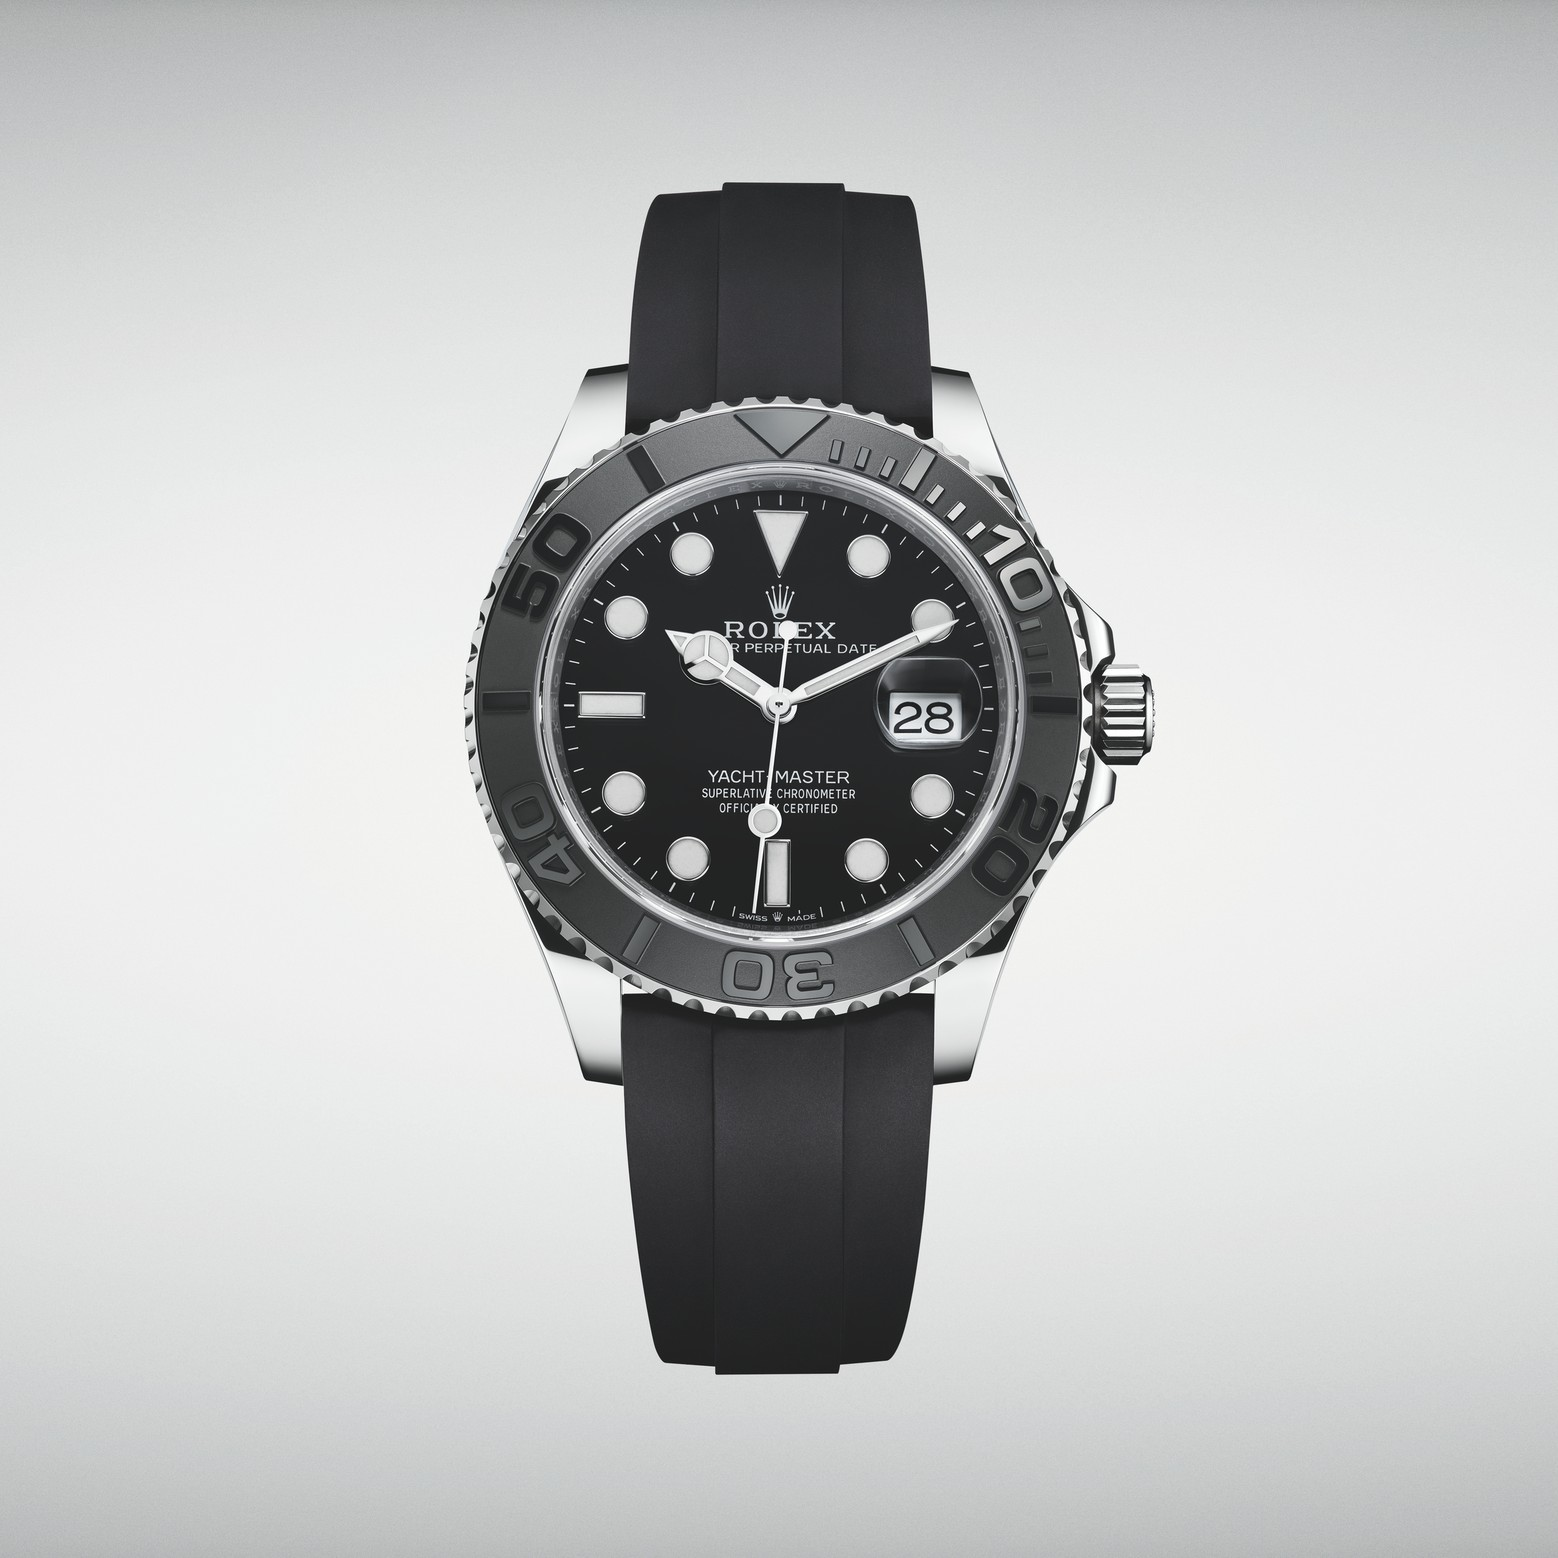 Rolex Oyster Perpetual Yacht Master II 42 mm-Baselworld-2019